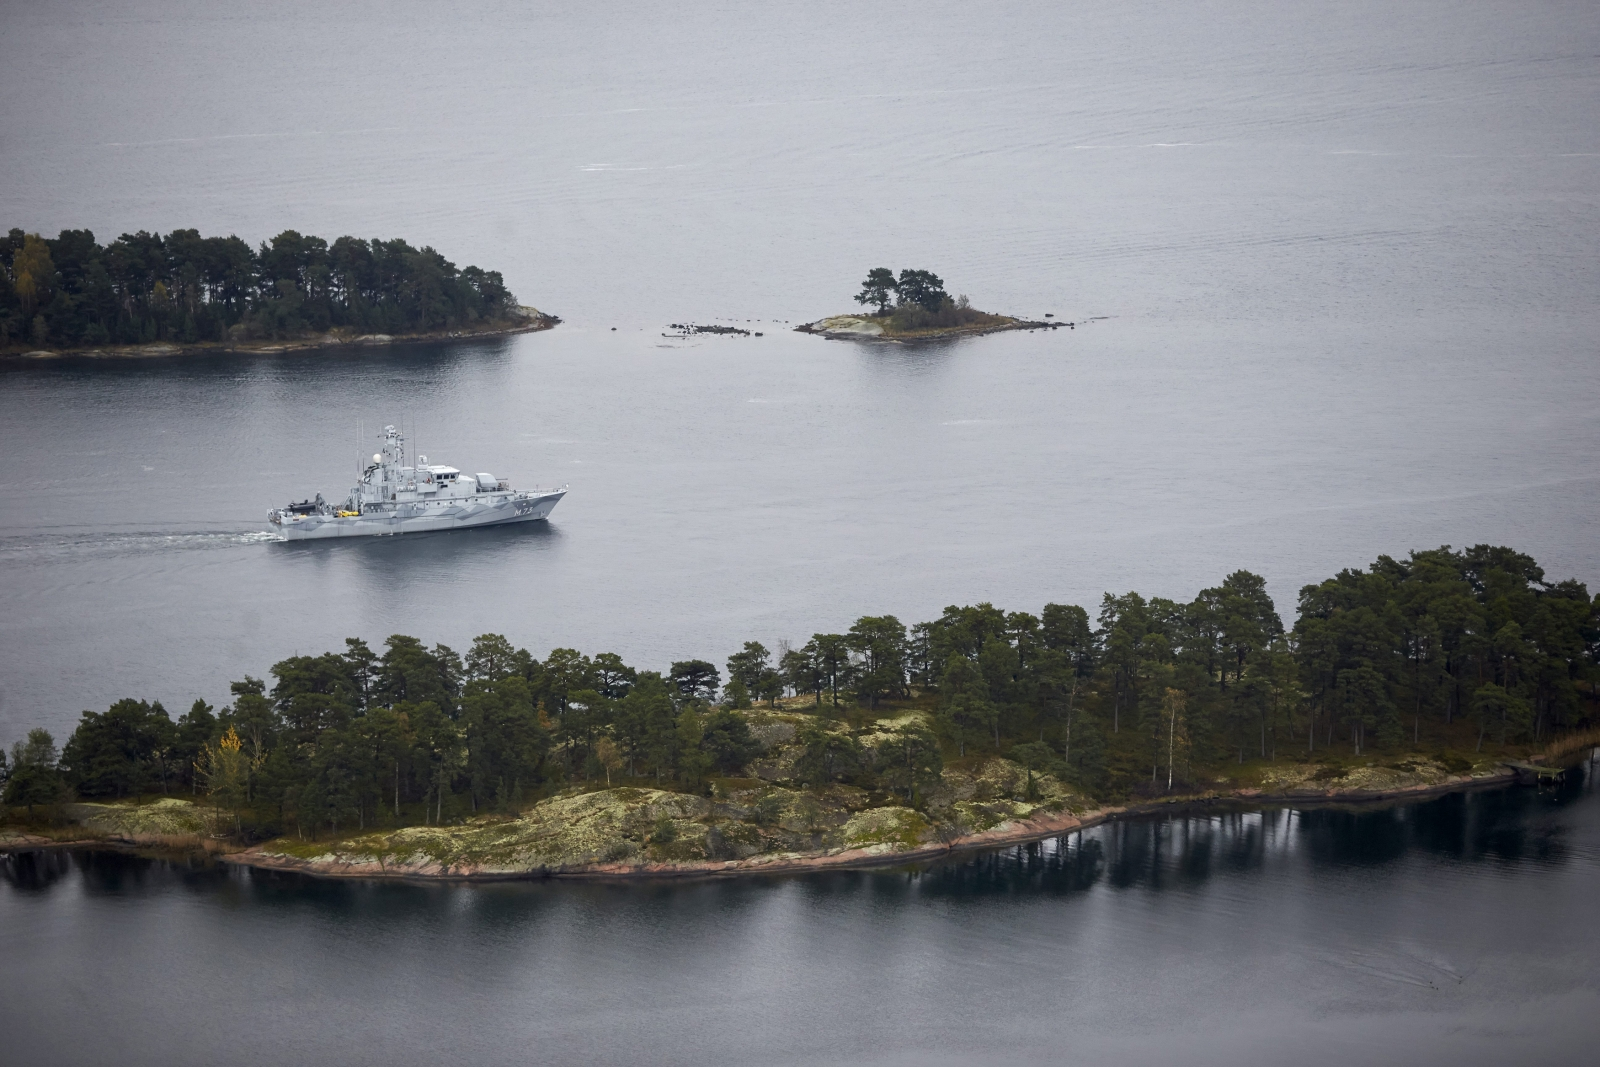 Swedish minesweeper HMS Koster patrols the waters of the Stockholm archipelago